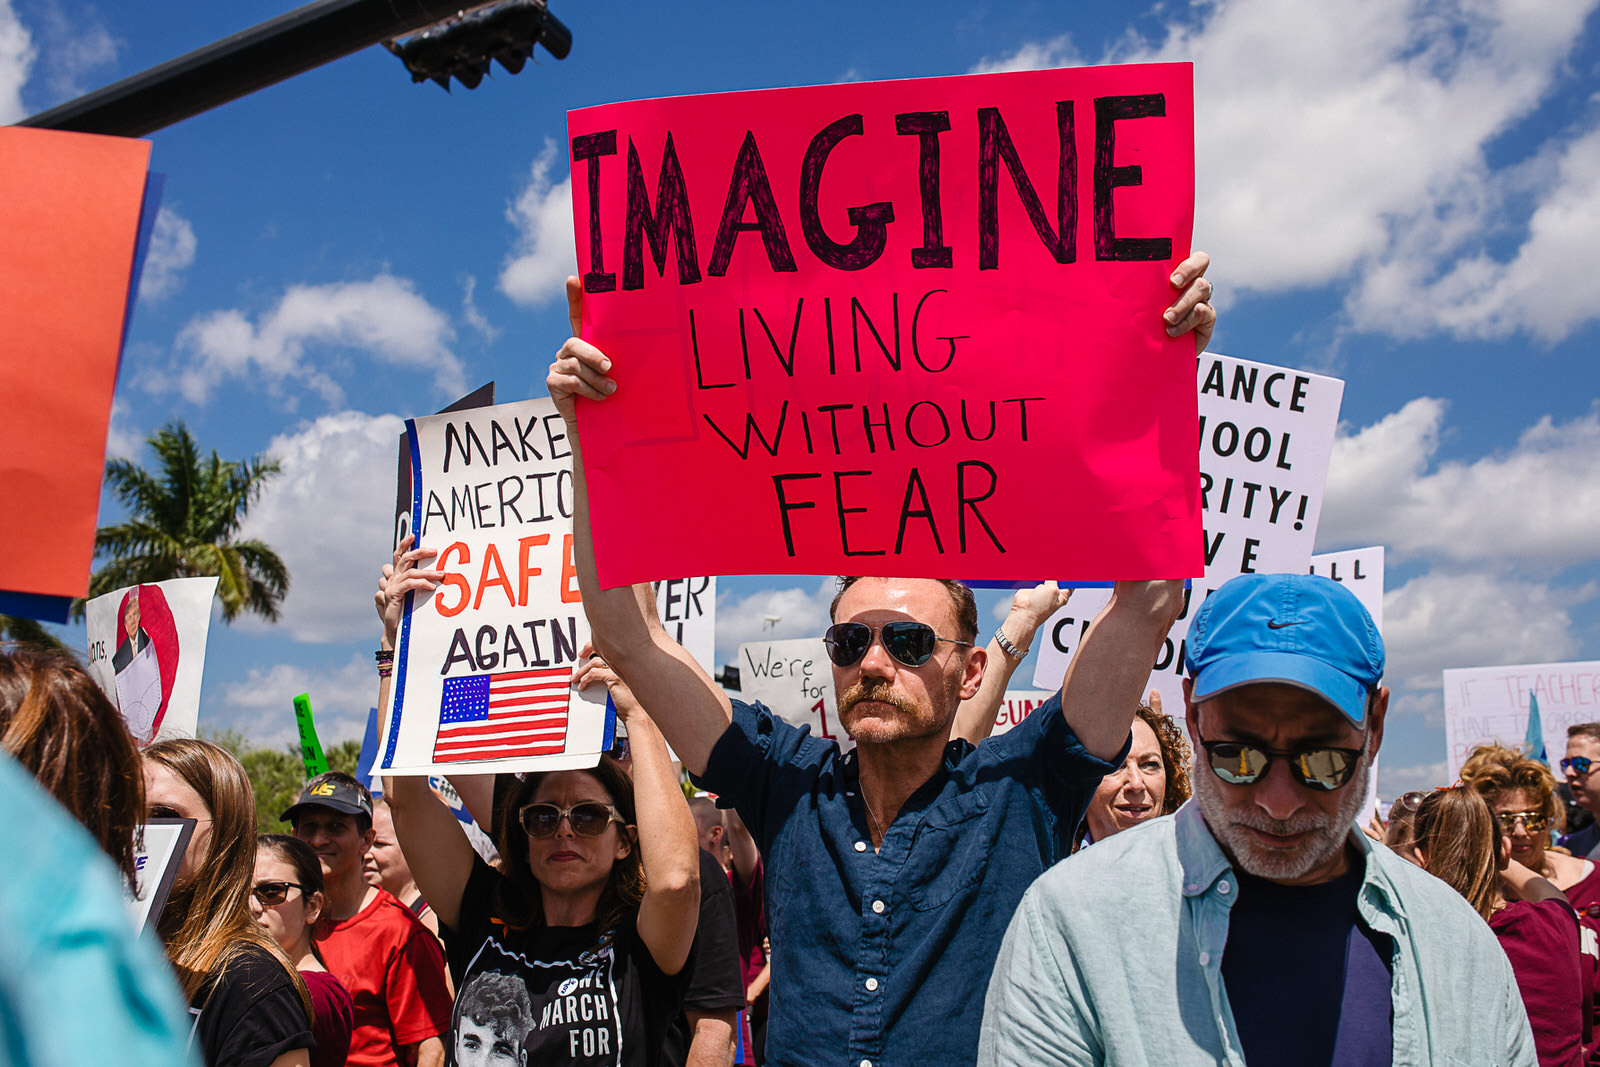 March-For-Our-Lives-Parkland-FL-March-24-2018-Sonju-Photography-14.JPG